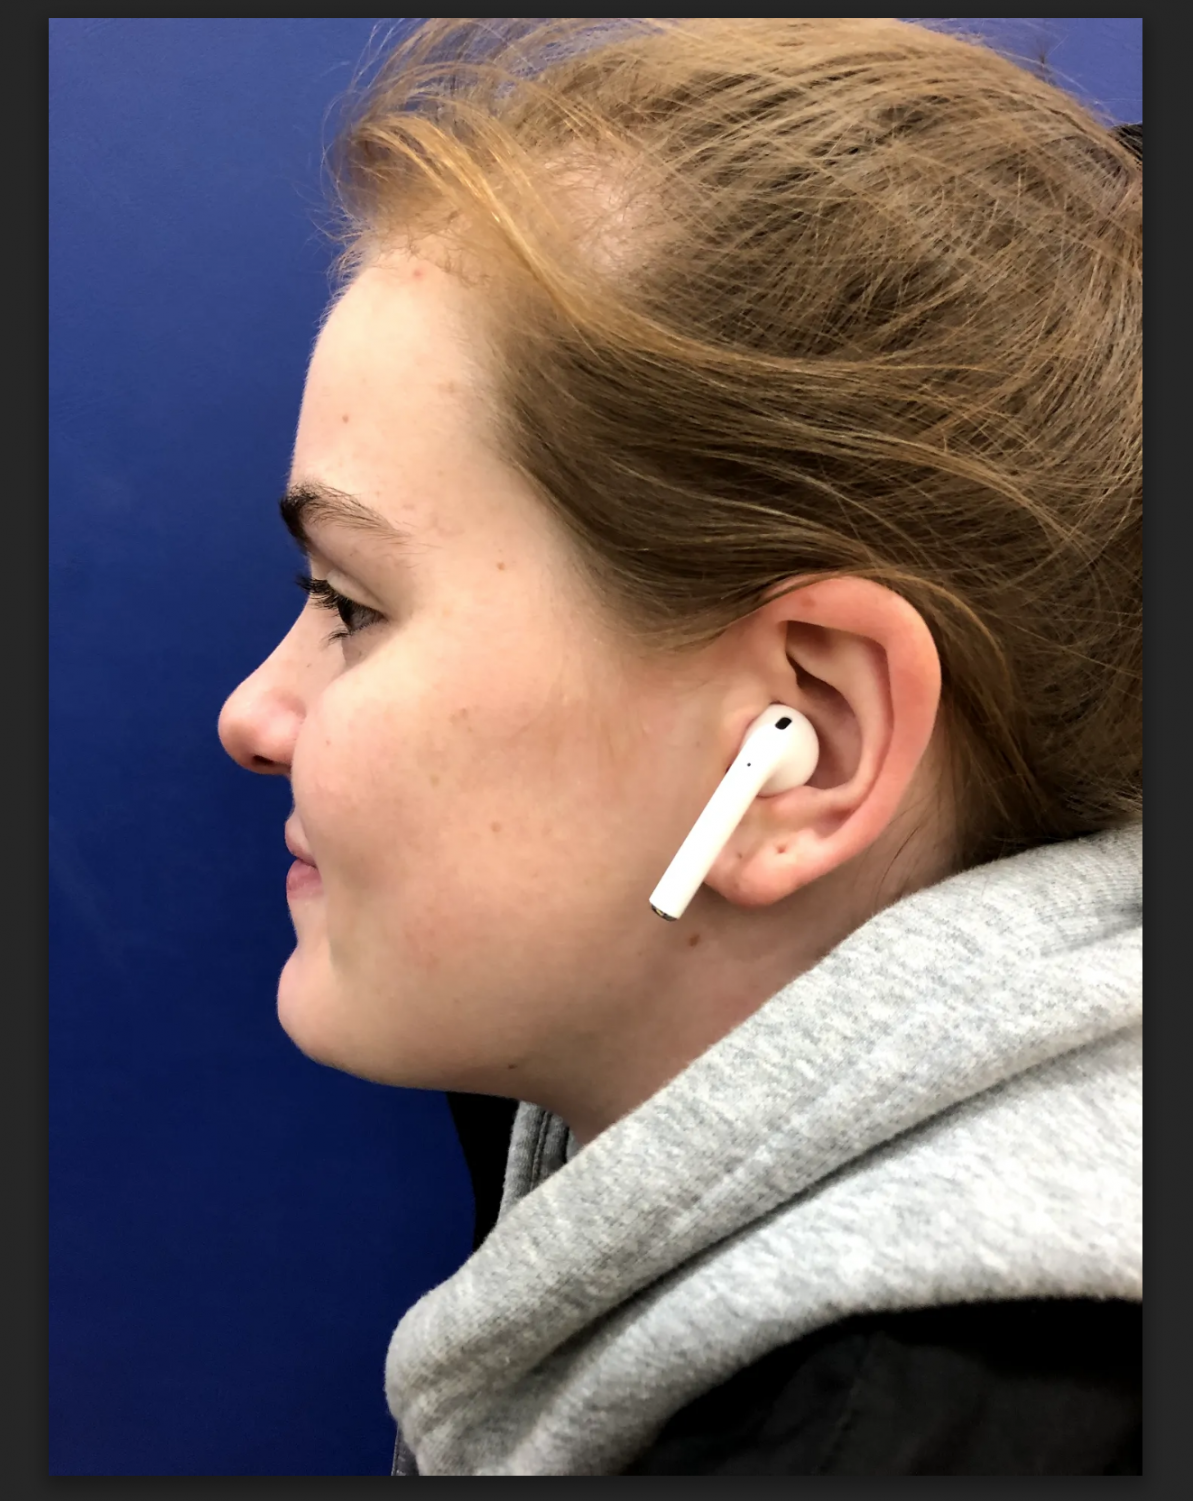 Senior Lily Maz wearing AirPods